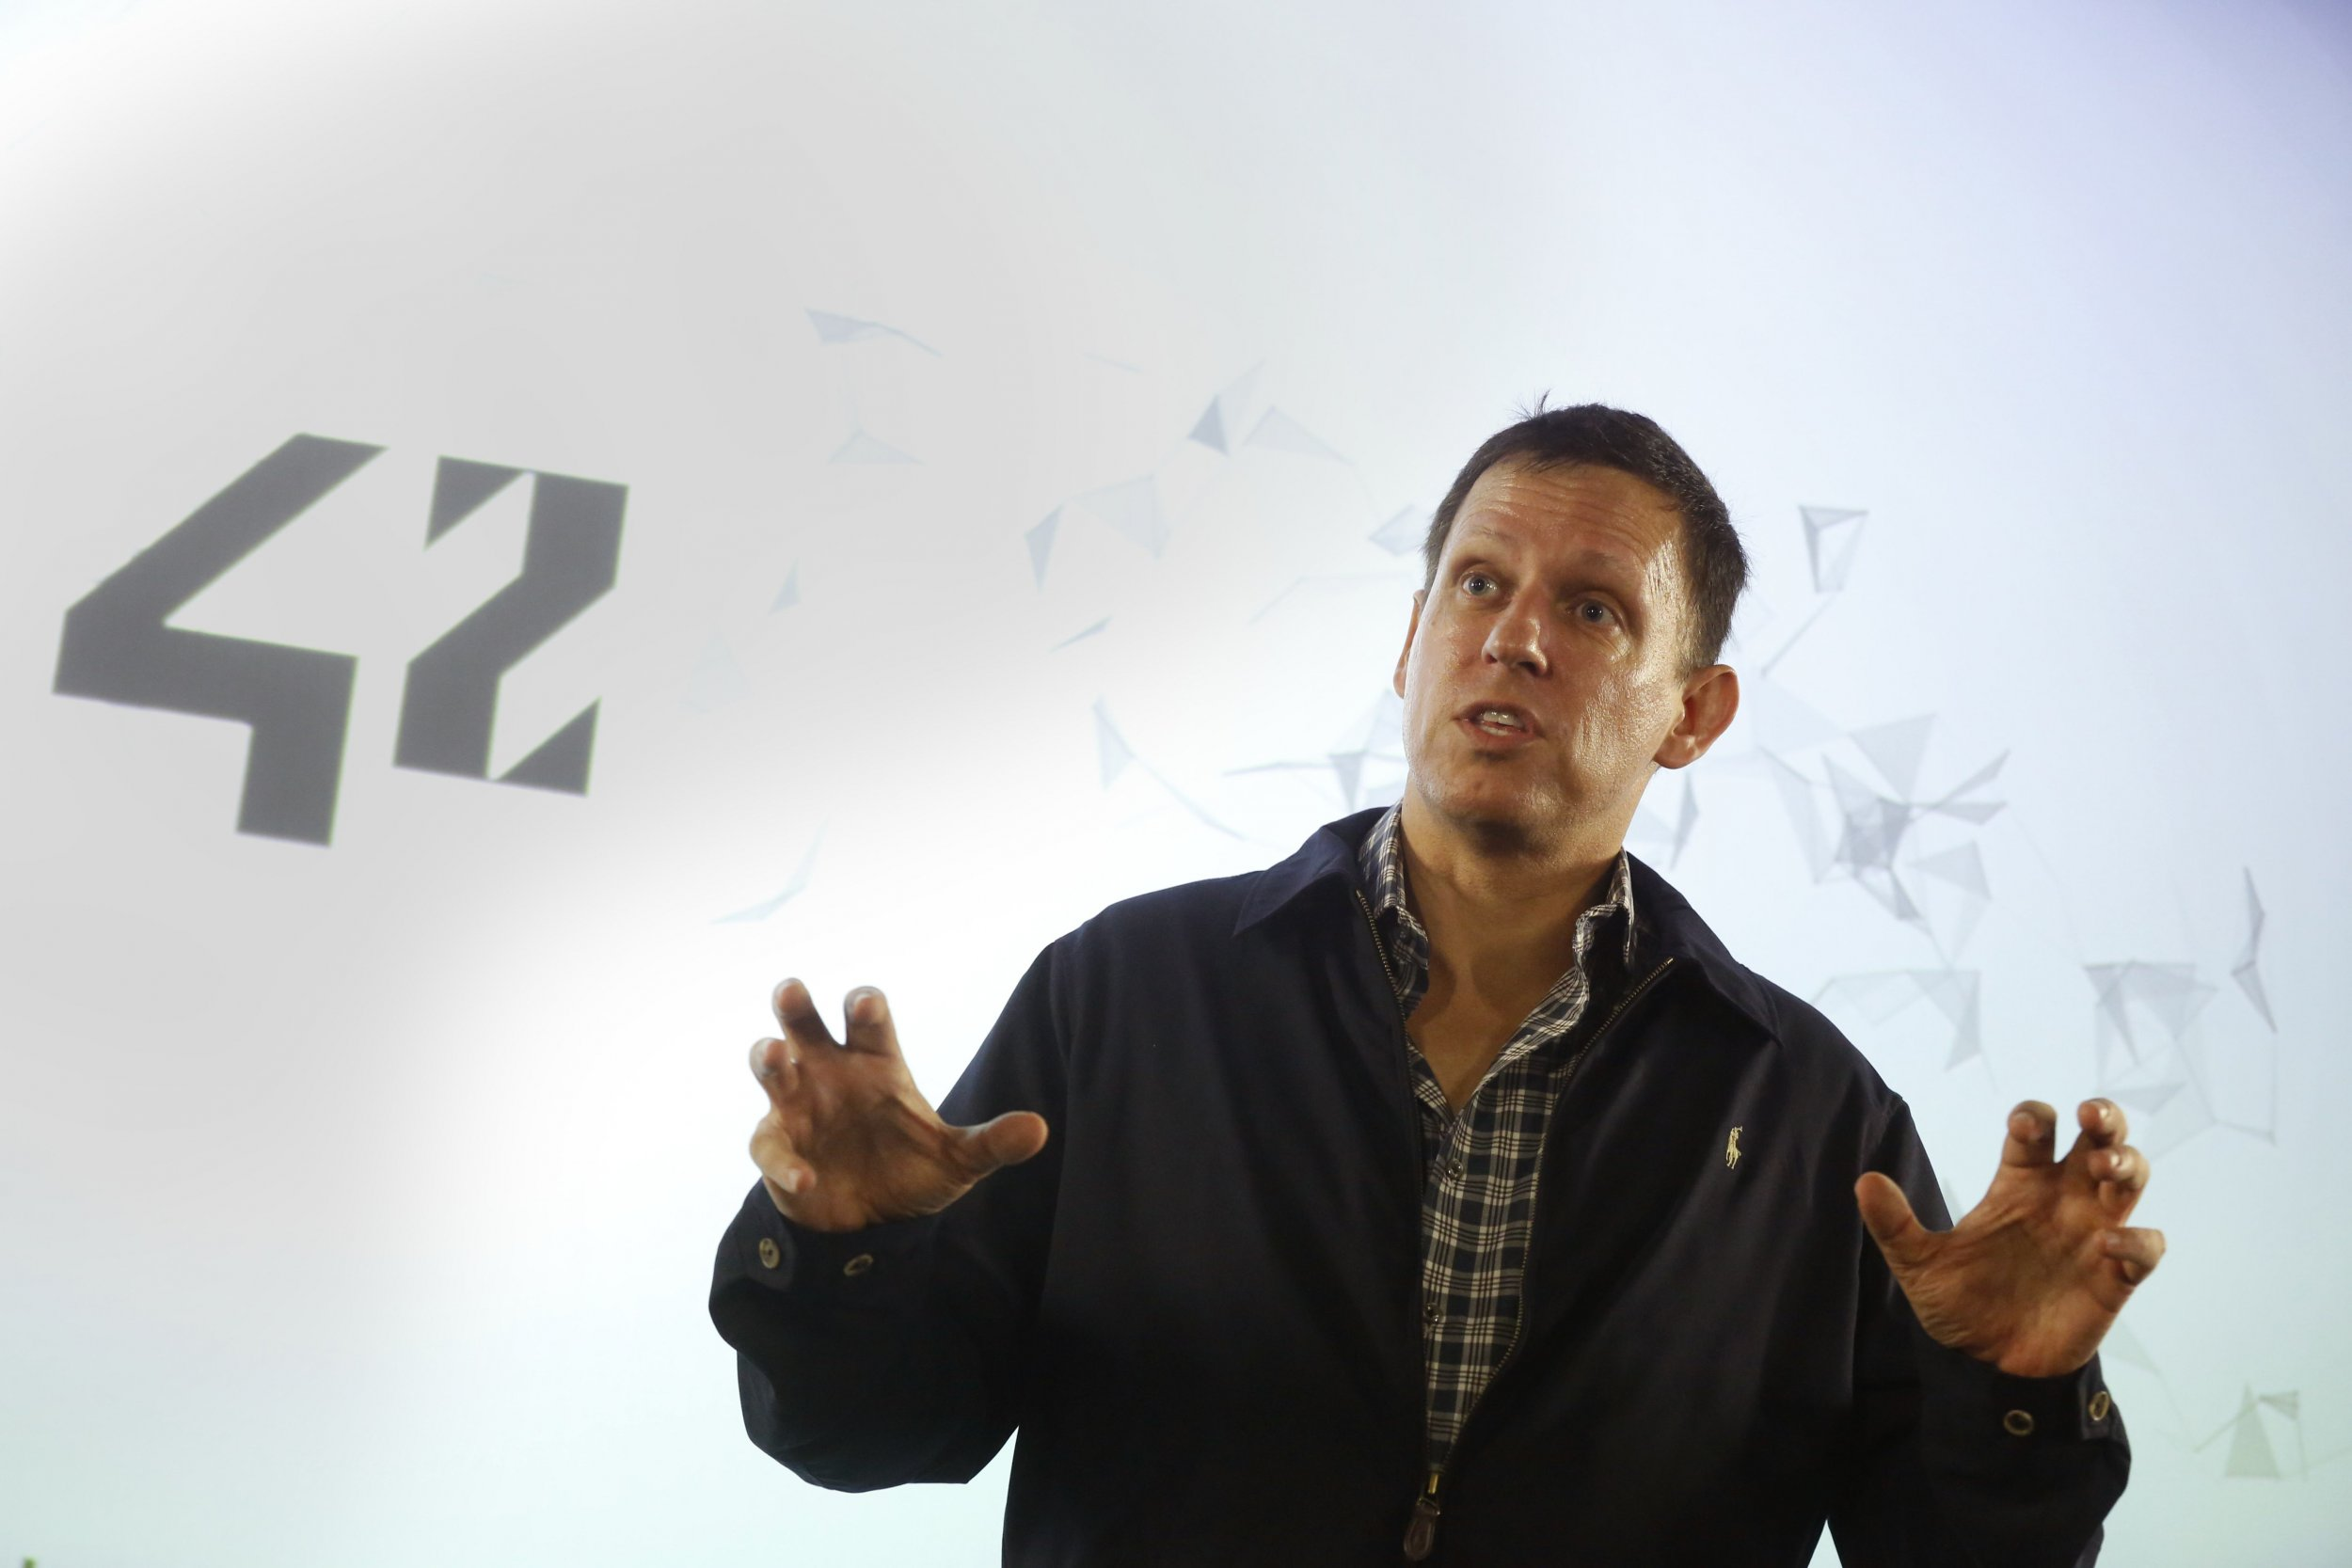 Peter Thiel and gawker